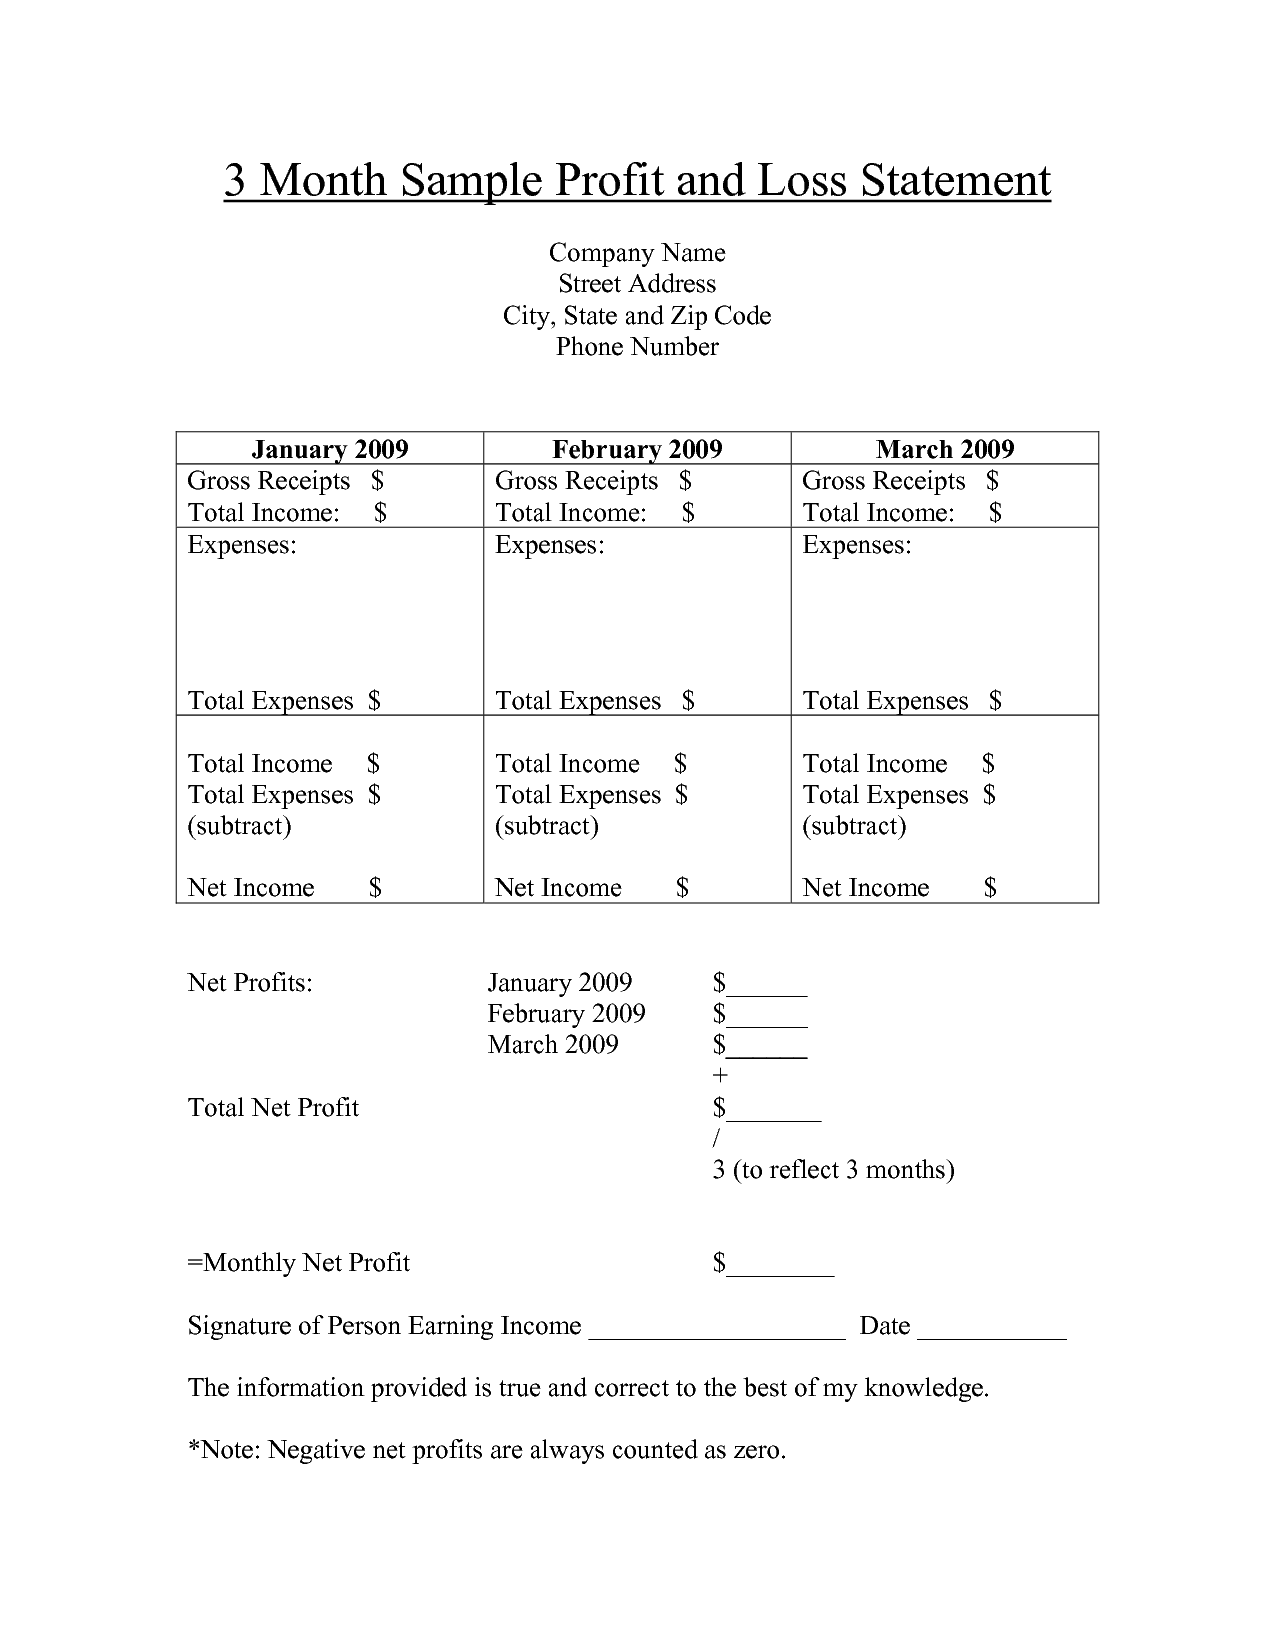 Printable Profit And Loss Statement Profit And Loss Blank Form, Profit And Loss  Template, Profit And Loss Statement Template Cyberuse,  Blank Profit And Loss Statement Form